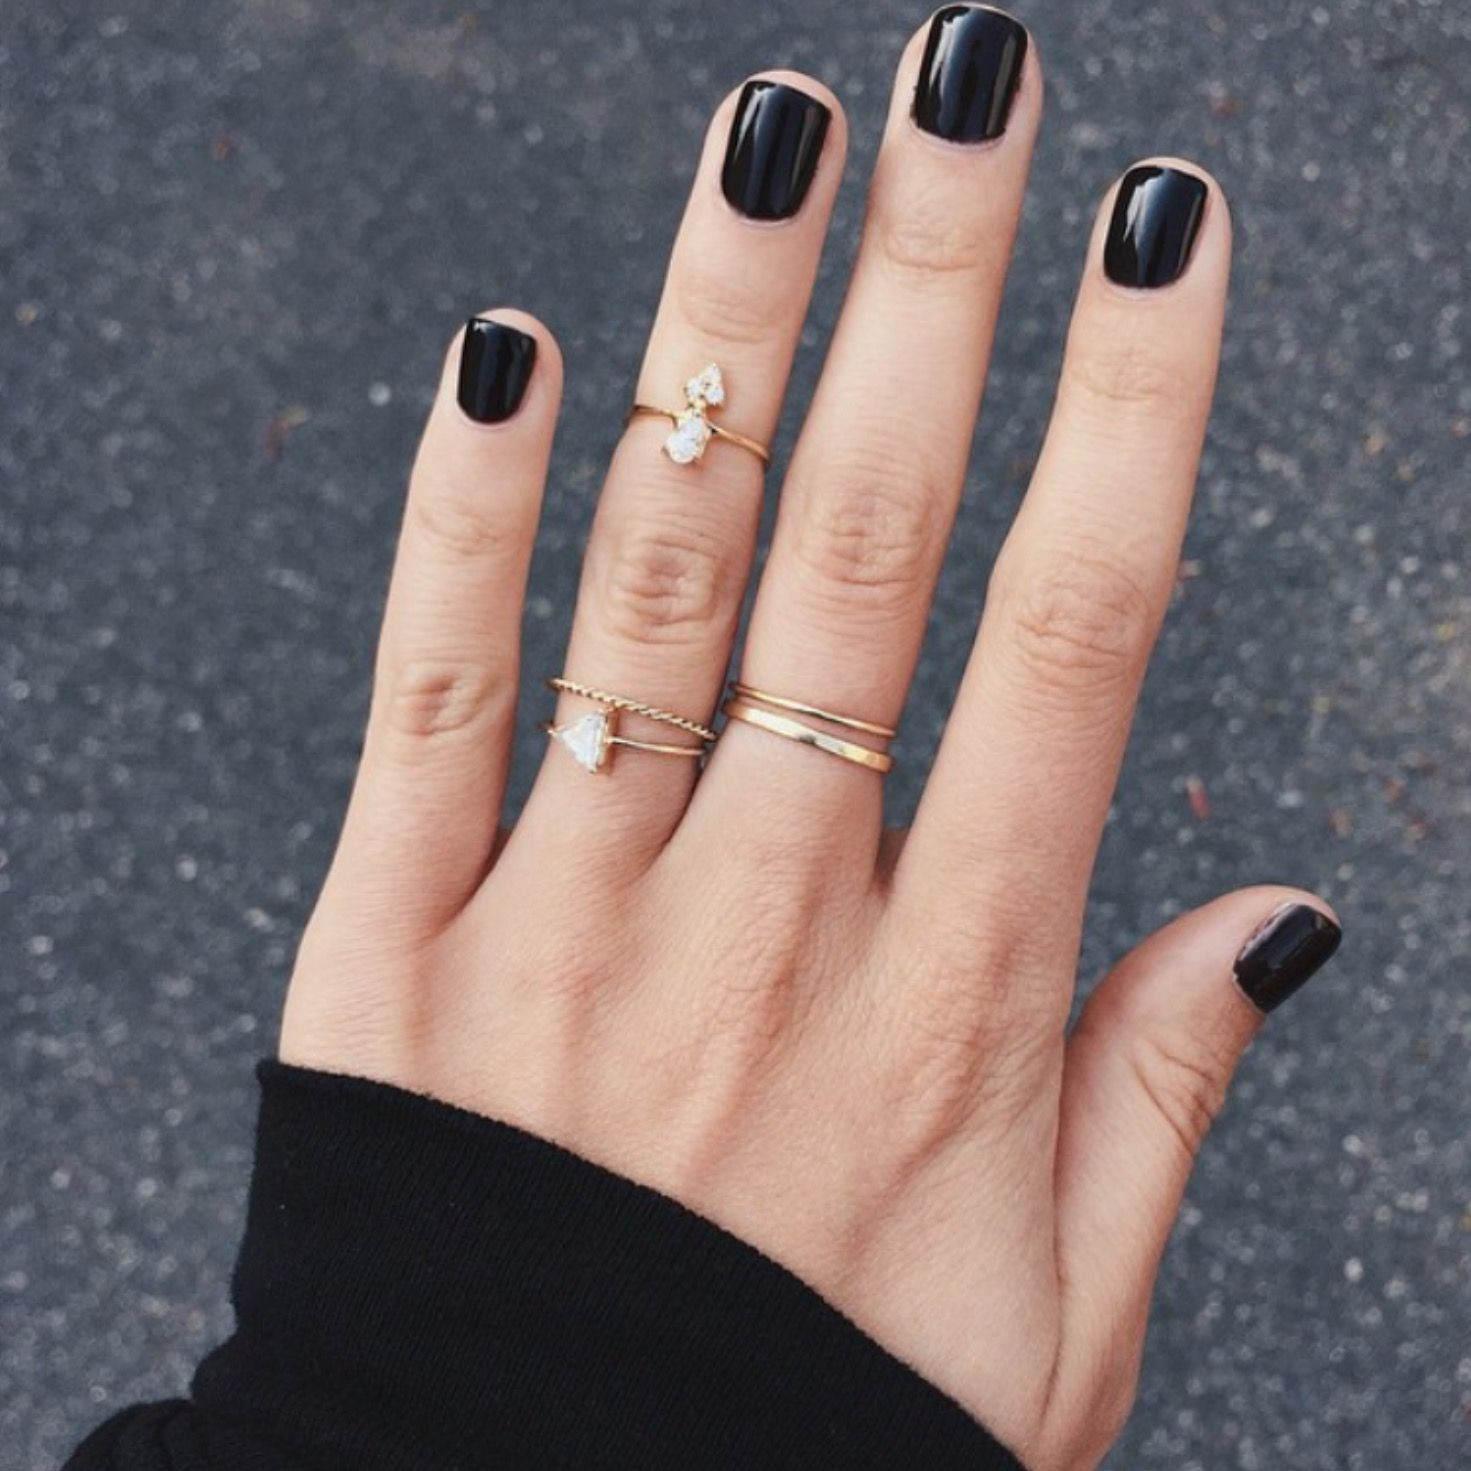 Black Shellac Nails